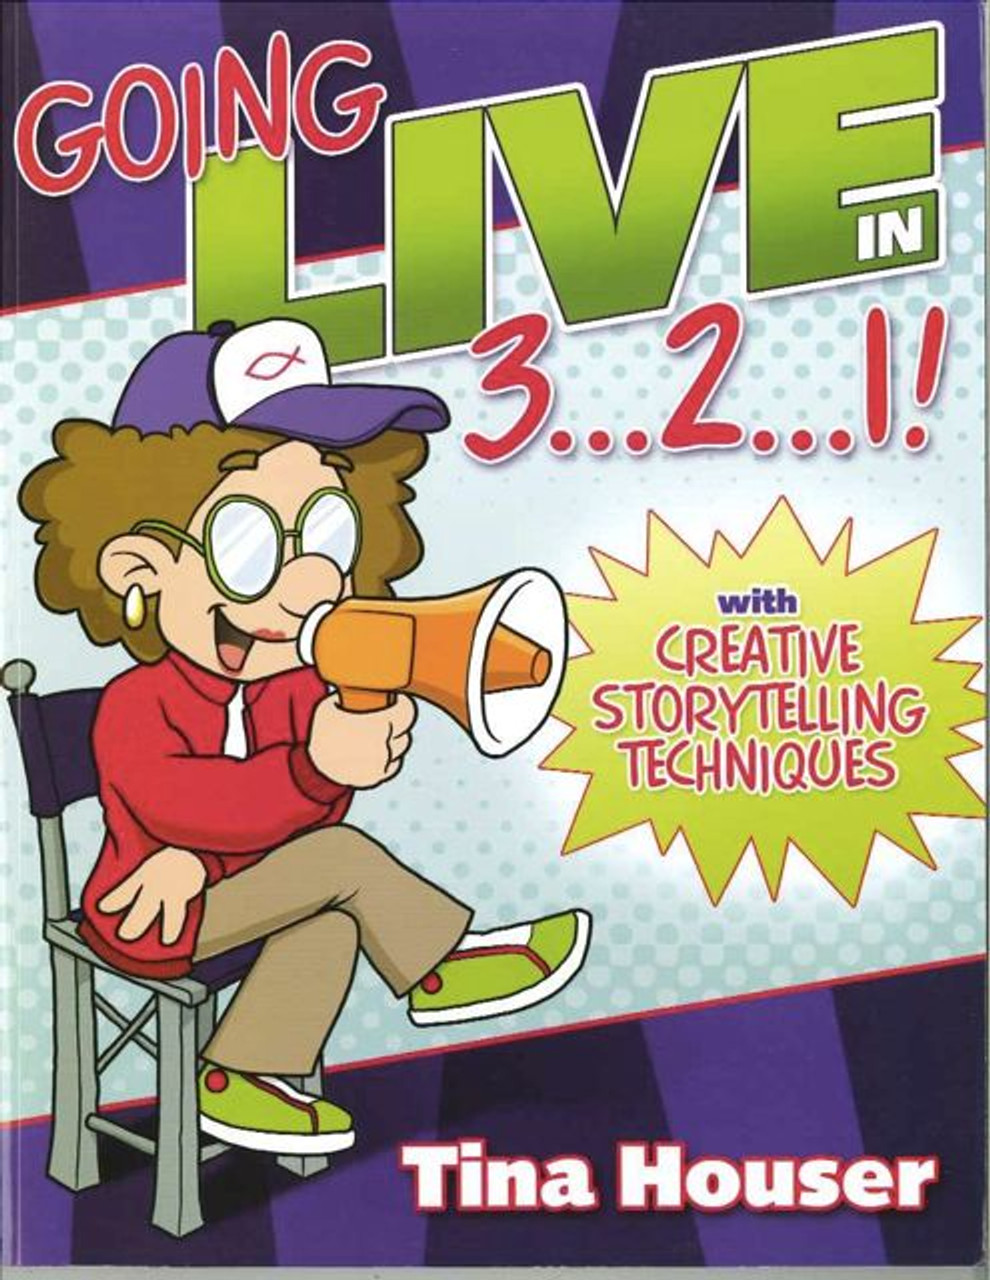 Going Live 3...2...1 with Creative Storytelling Techniques